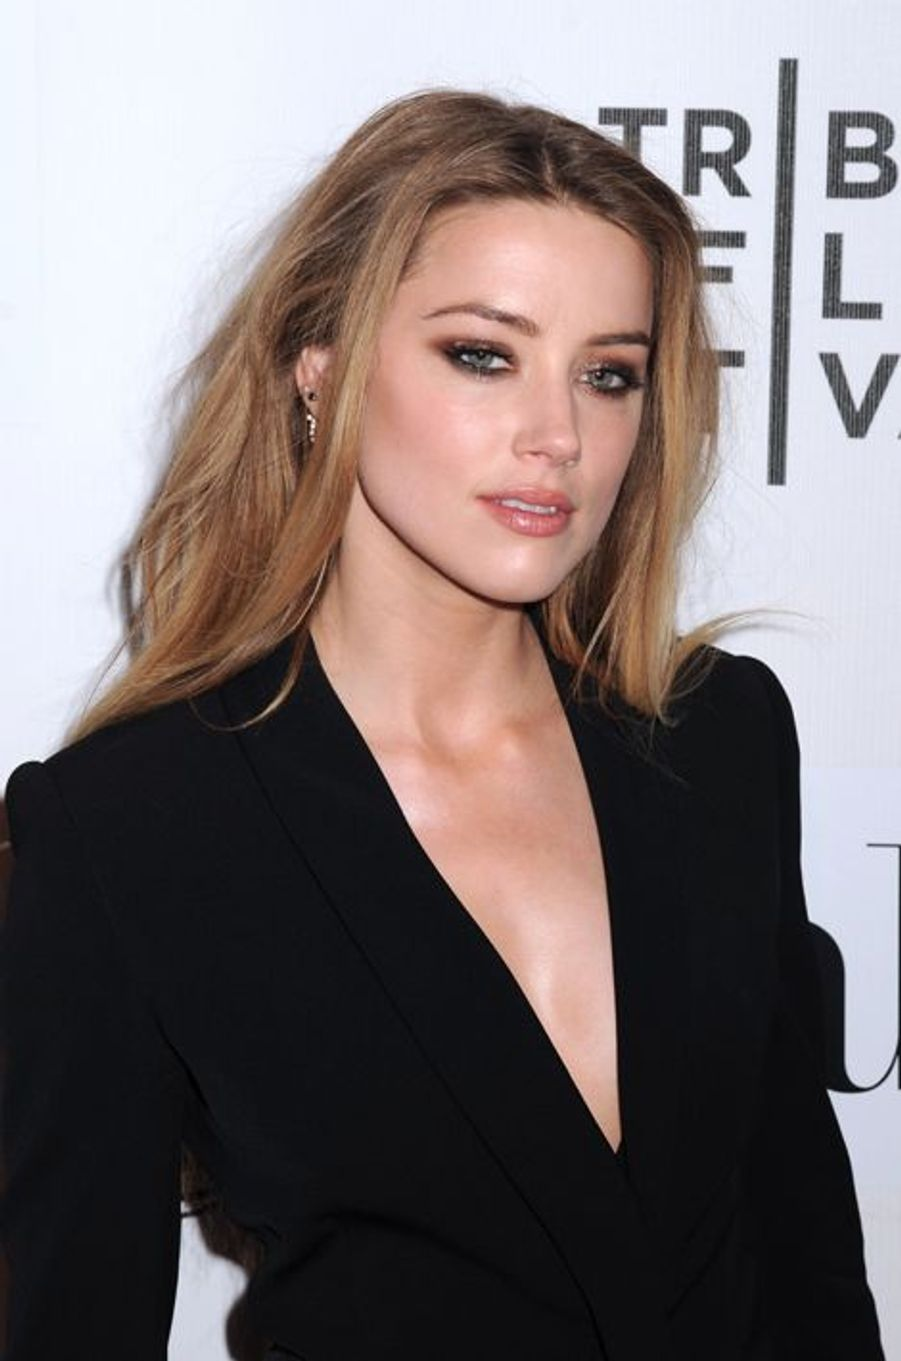 Amber Heard à New York le 16 avril 2015